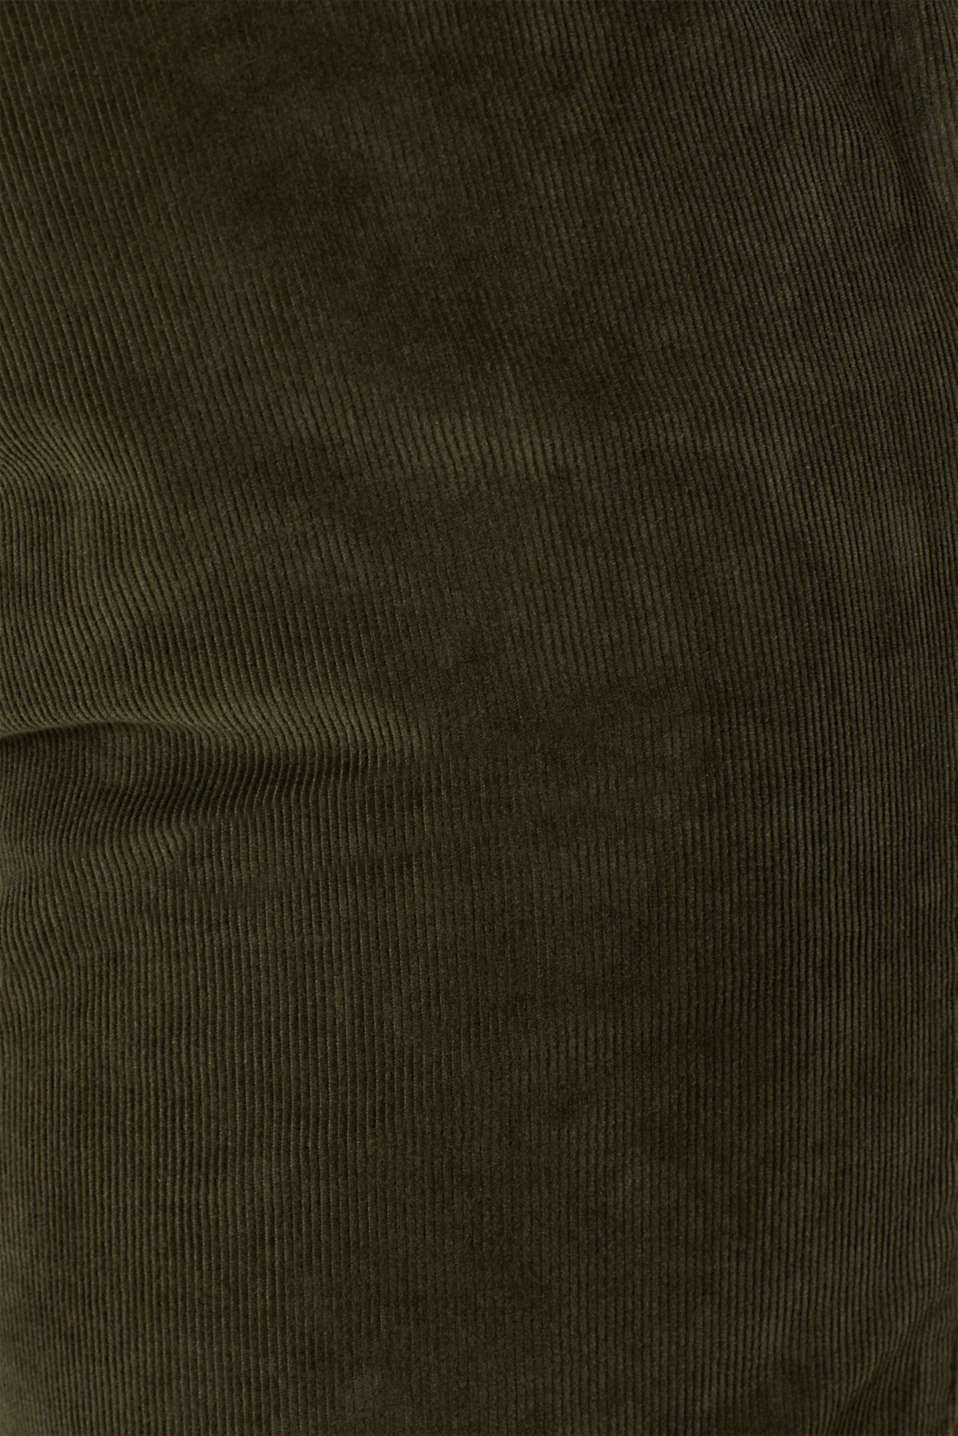 Corduroy trousers made of 100% cotton, OLIVE, detail image number 4